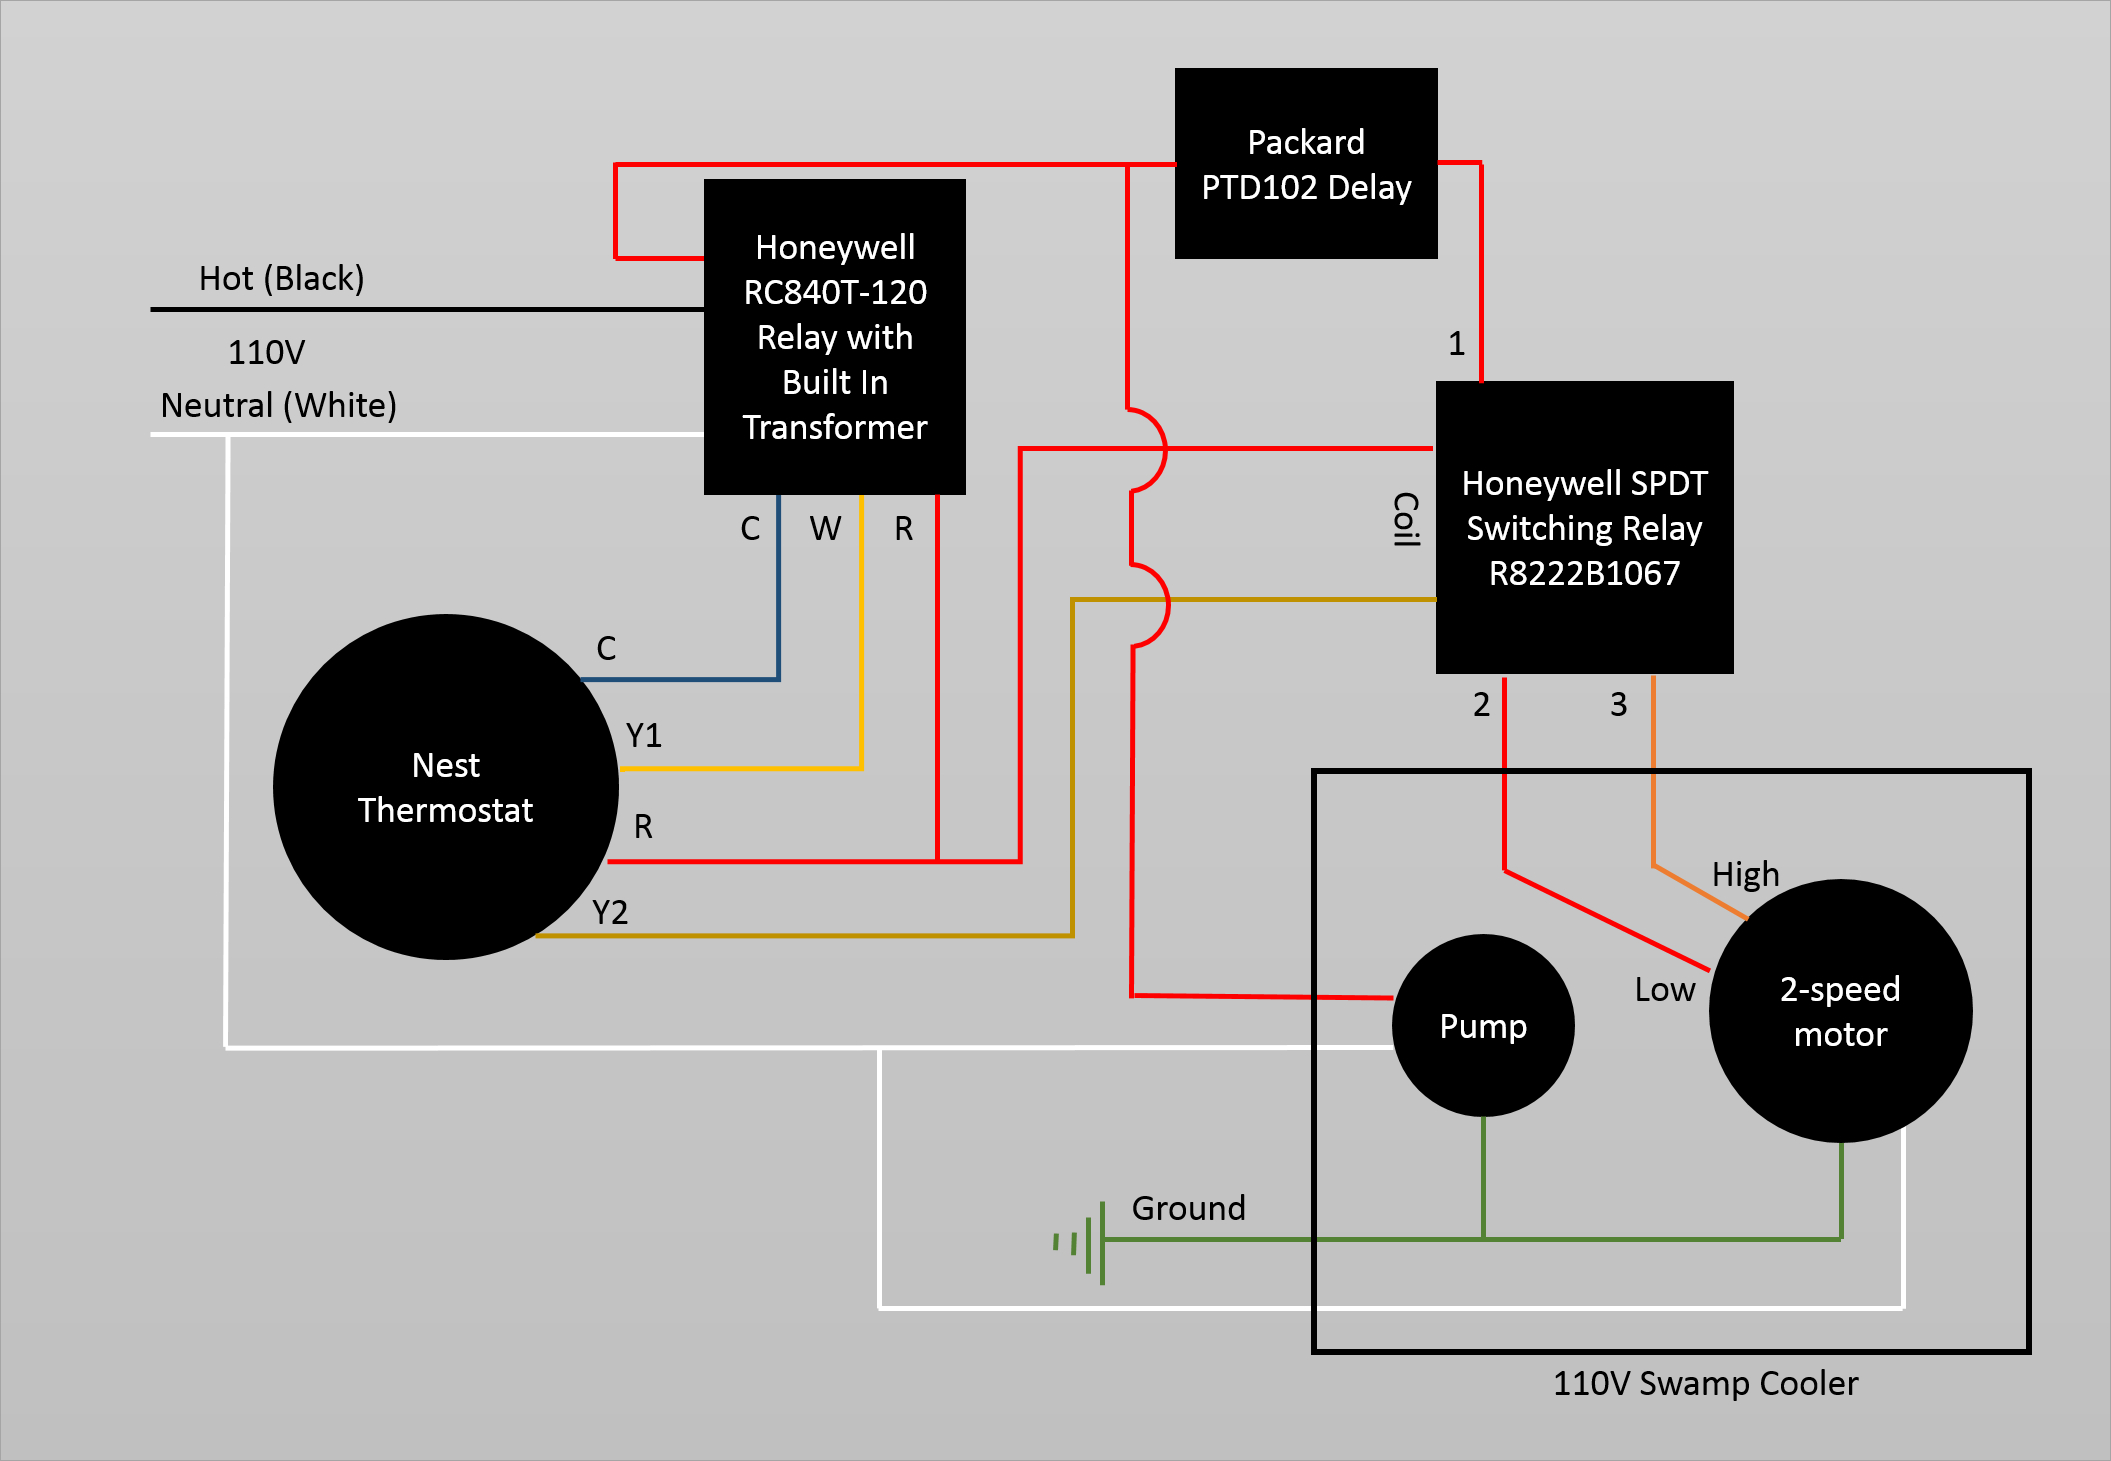 Wiring - Controlling 110V Swamp Cooler Using Nest Thermostat - Home - Nest Thermostat Wiring Diagram To Old Heater